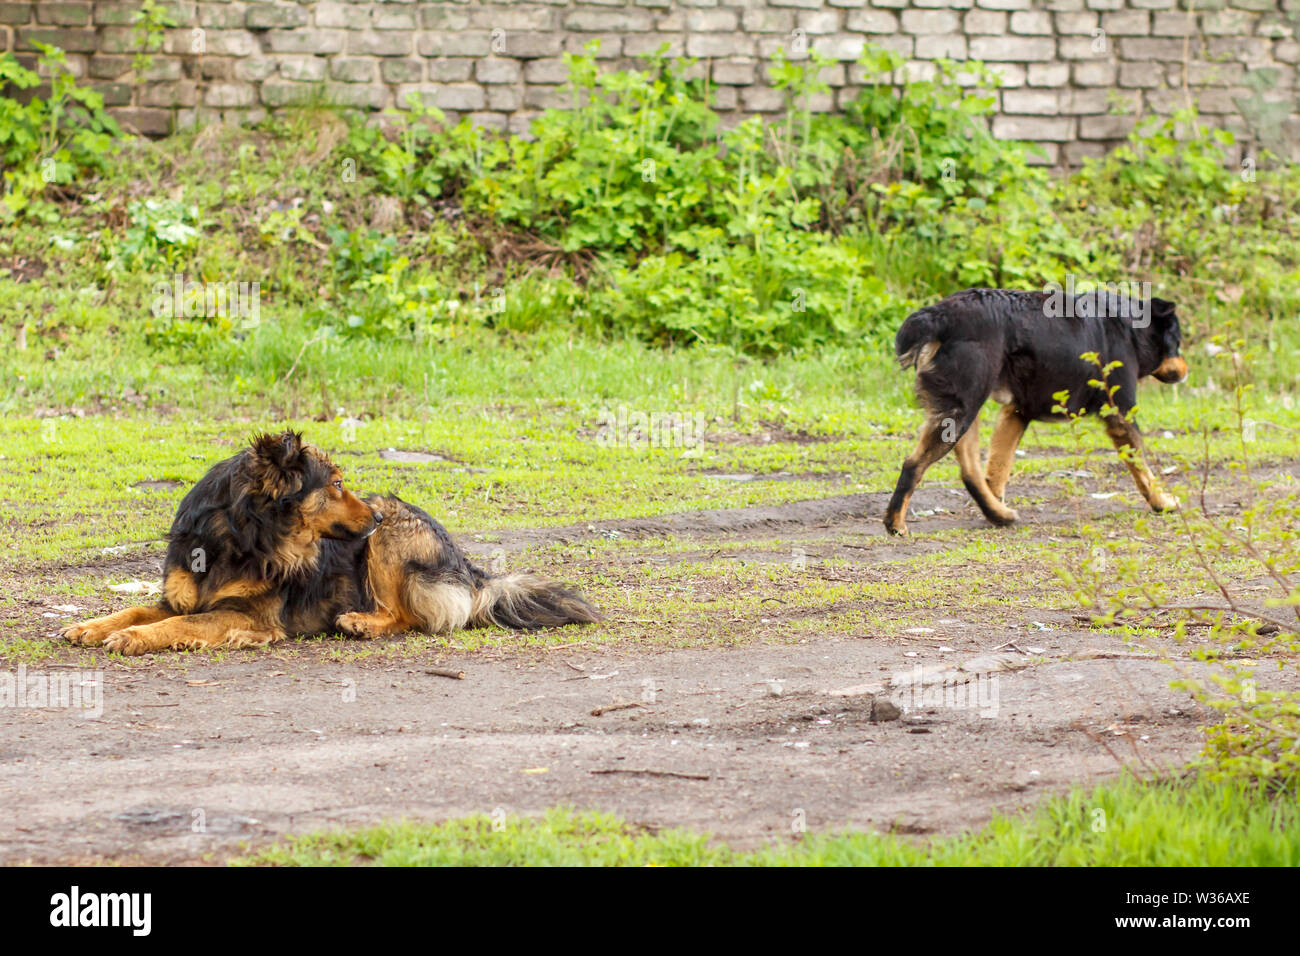 Homeless dog looking at another dog on the road in the city with wall on the background. - Stock Image